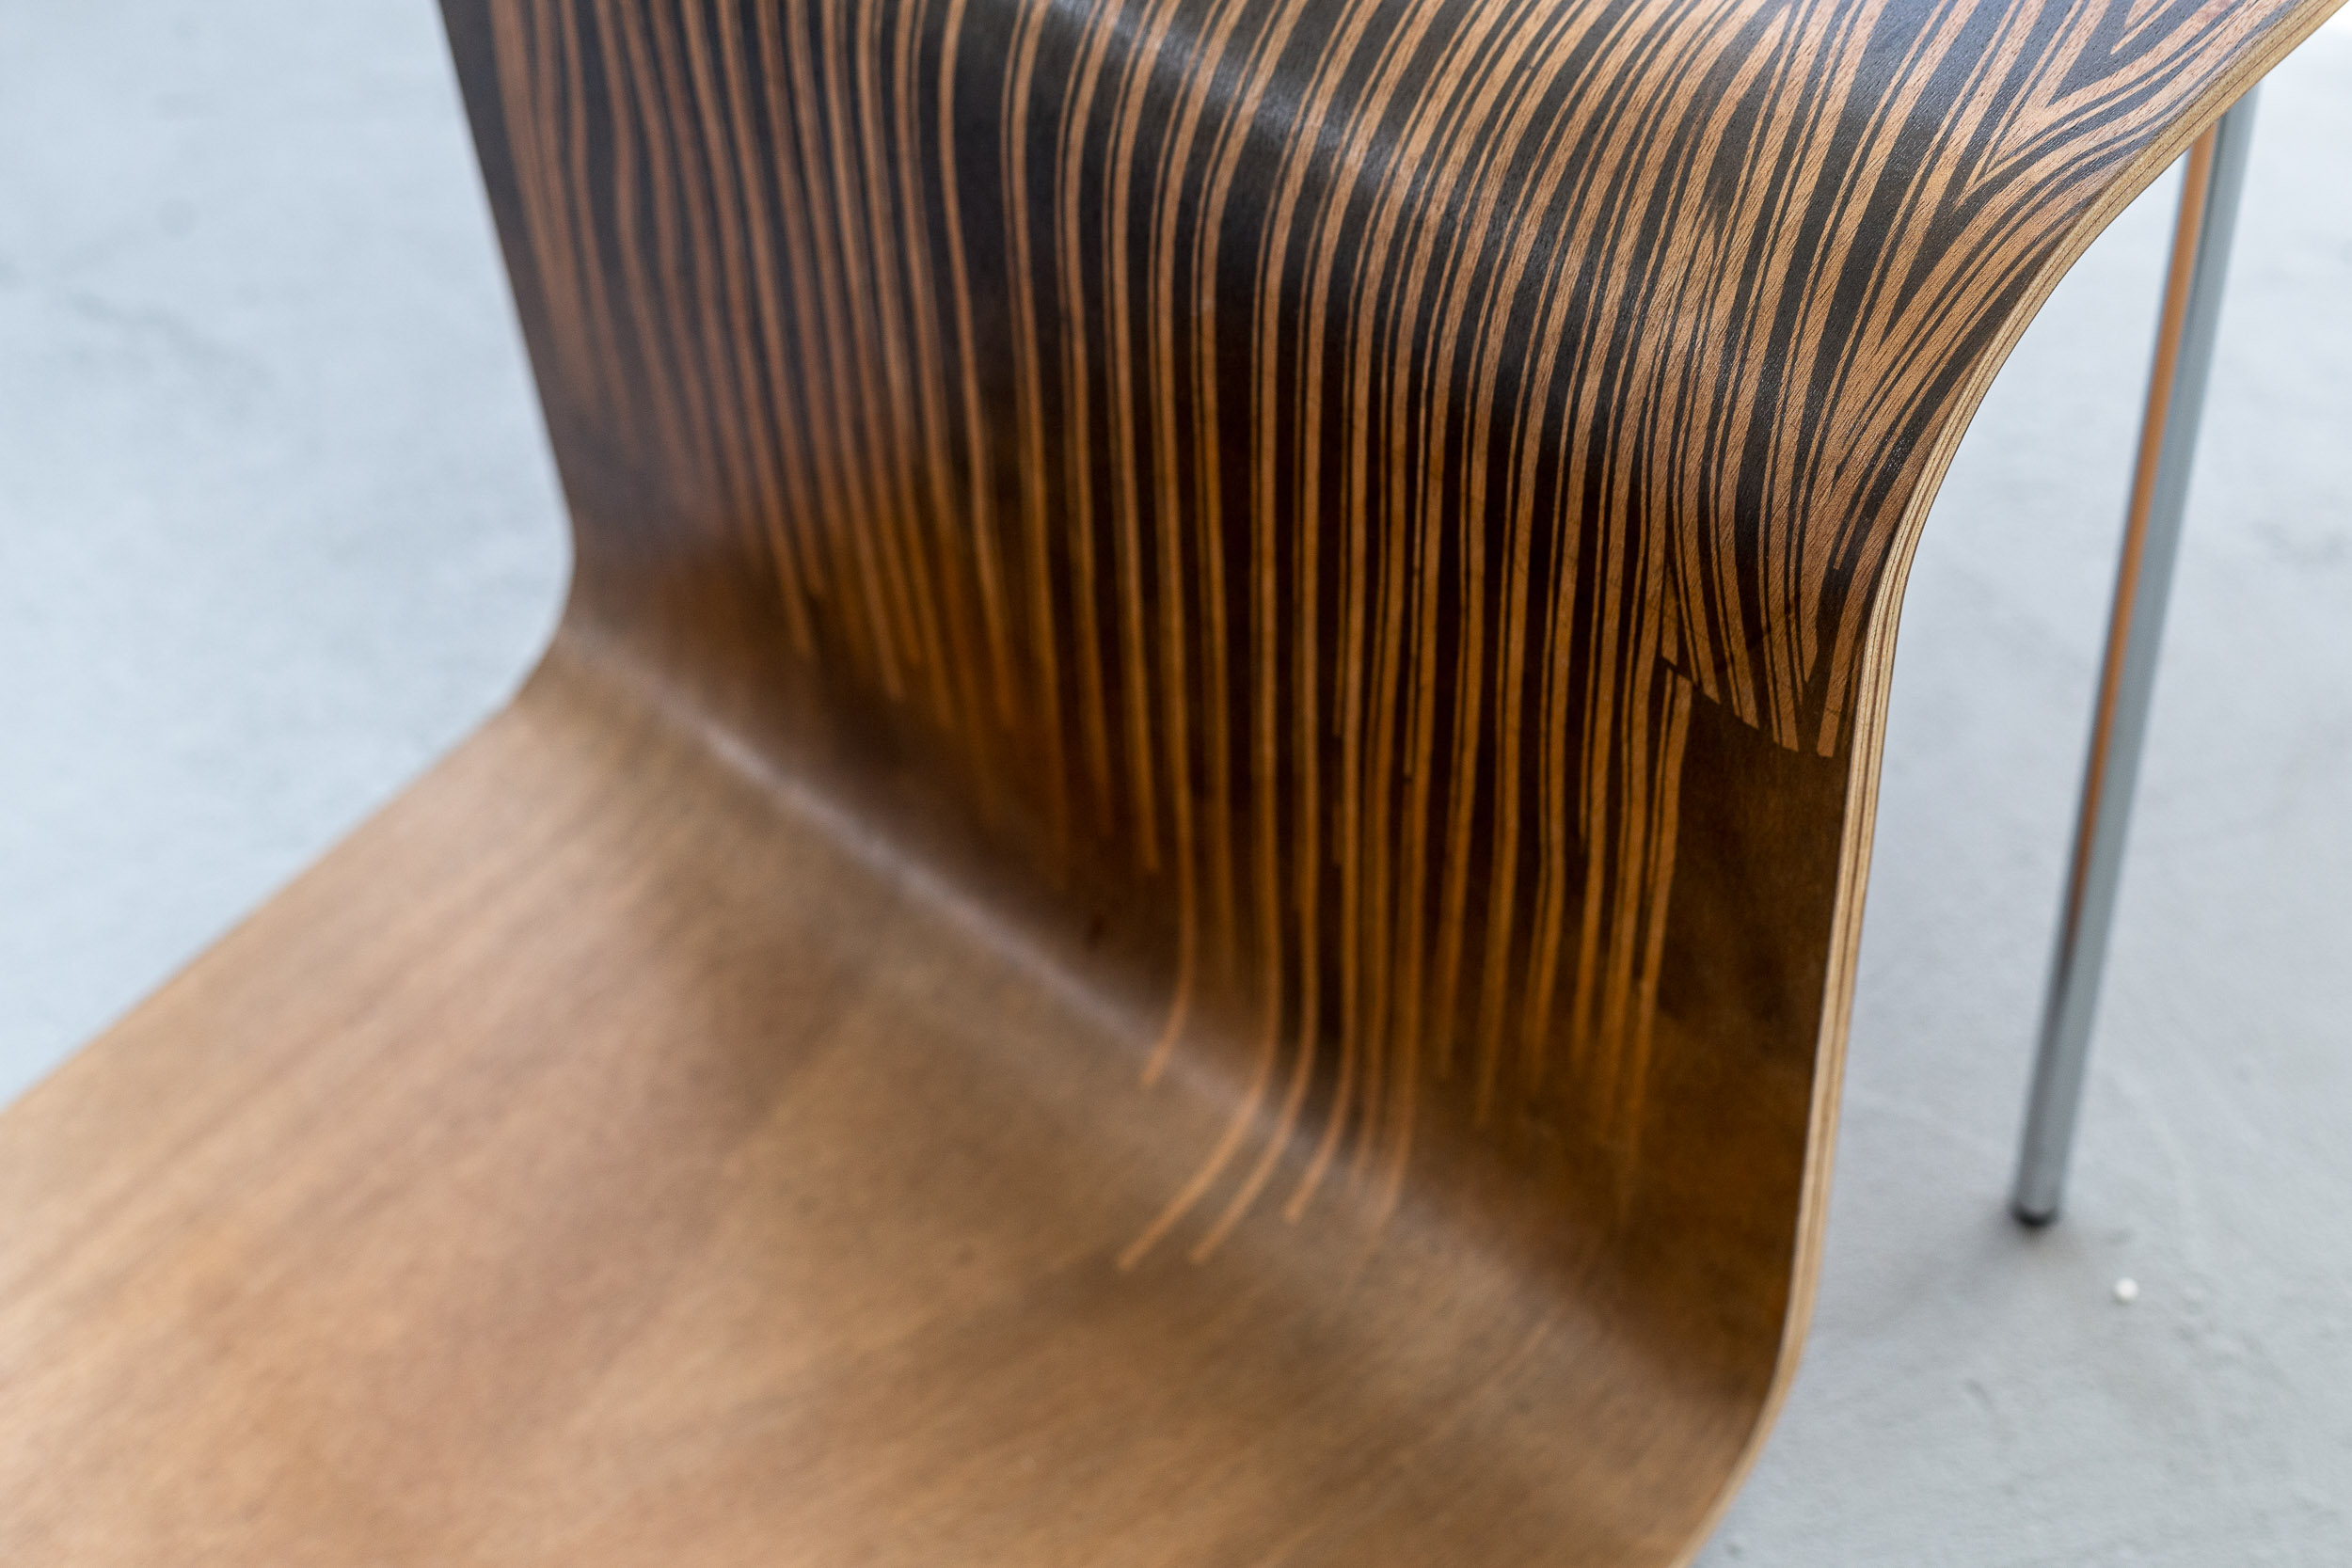 Fiona Banner,  Pinstripe Chair   (detail) ,  2015, graphite, vinyl, plywood, chair base, 43.3 x 149 x 46.2 cm  Photo: Kilian Bannwart